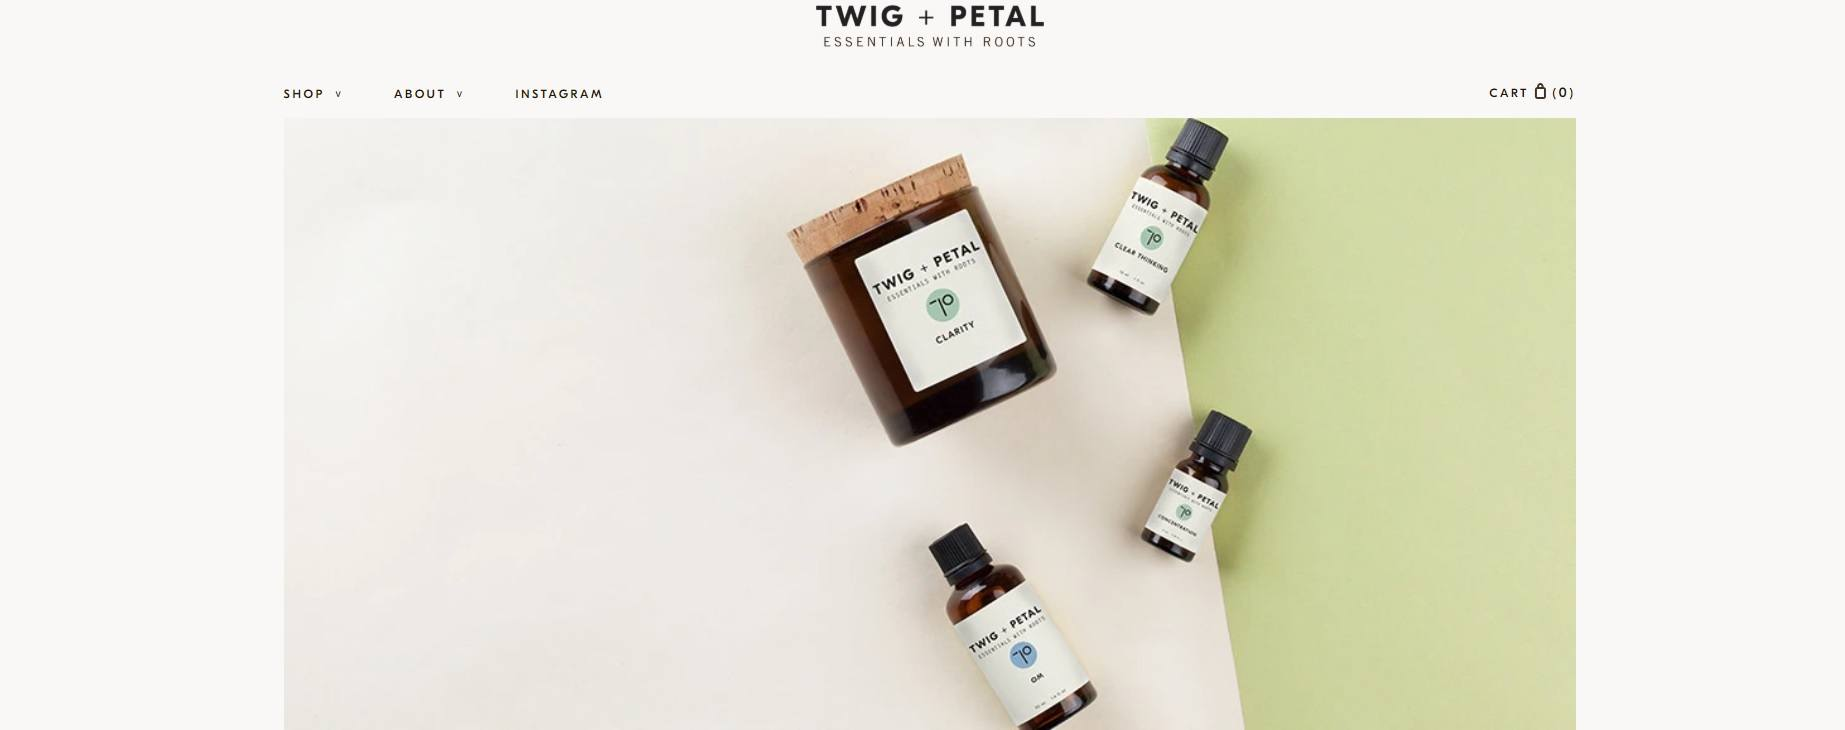 Twig + Pedal Essential Oils